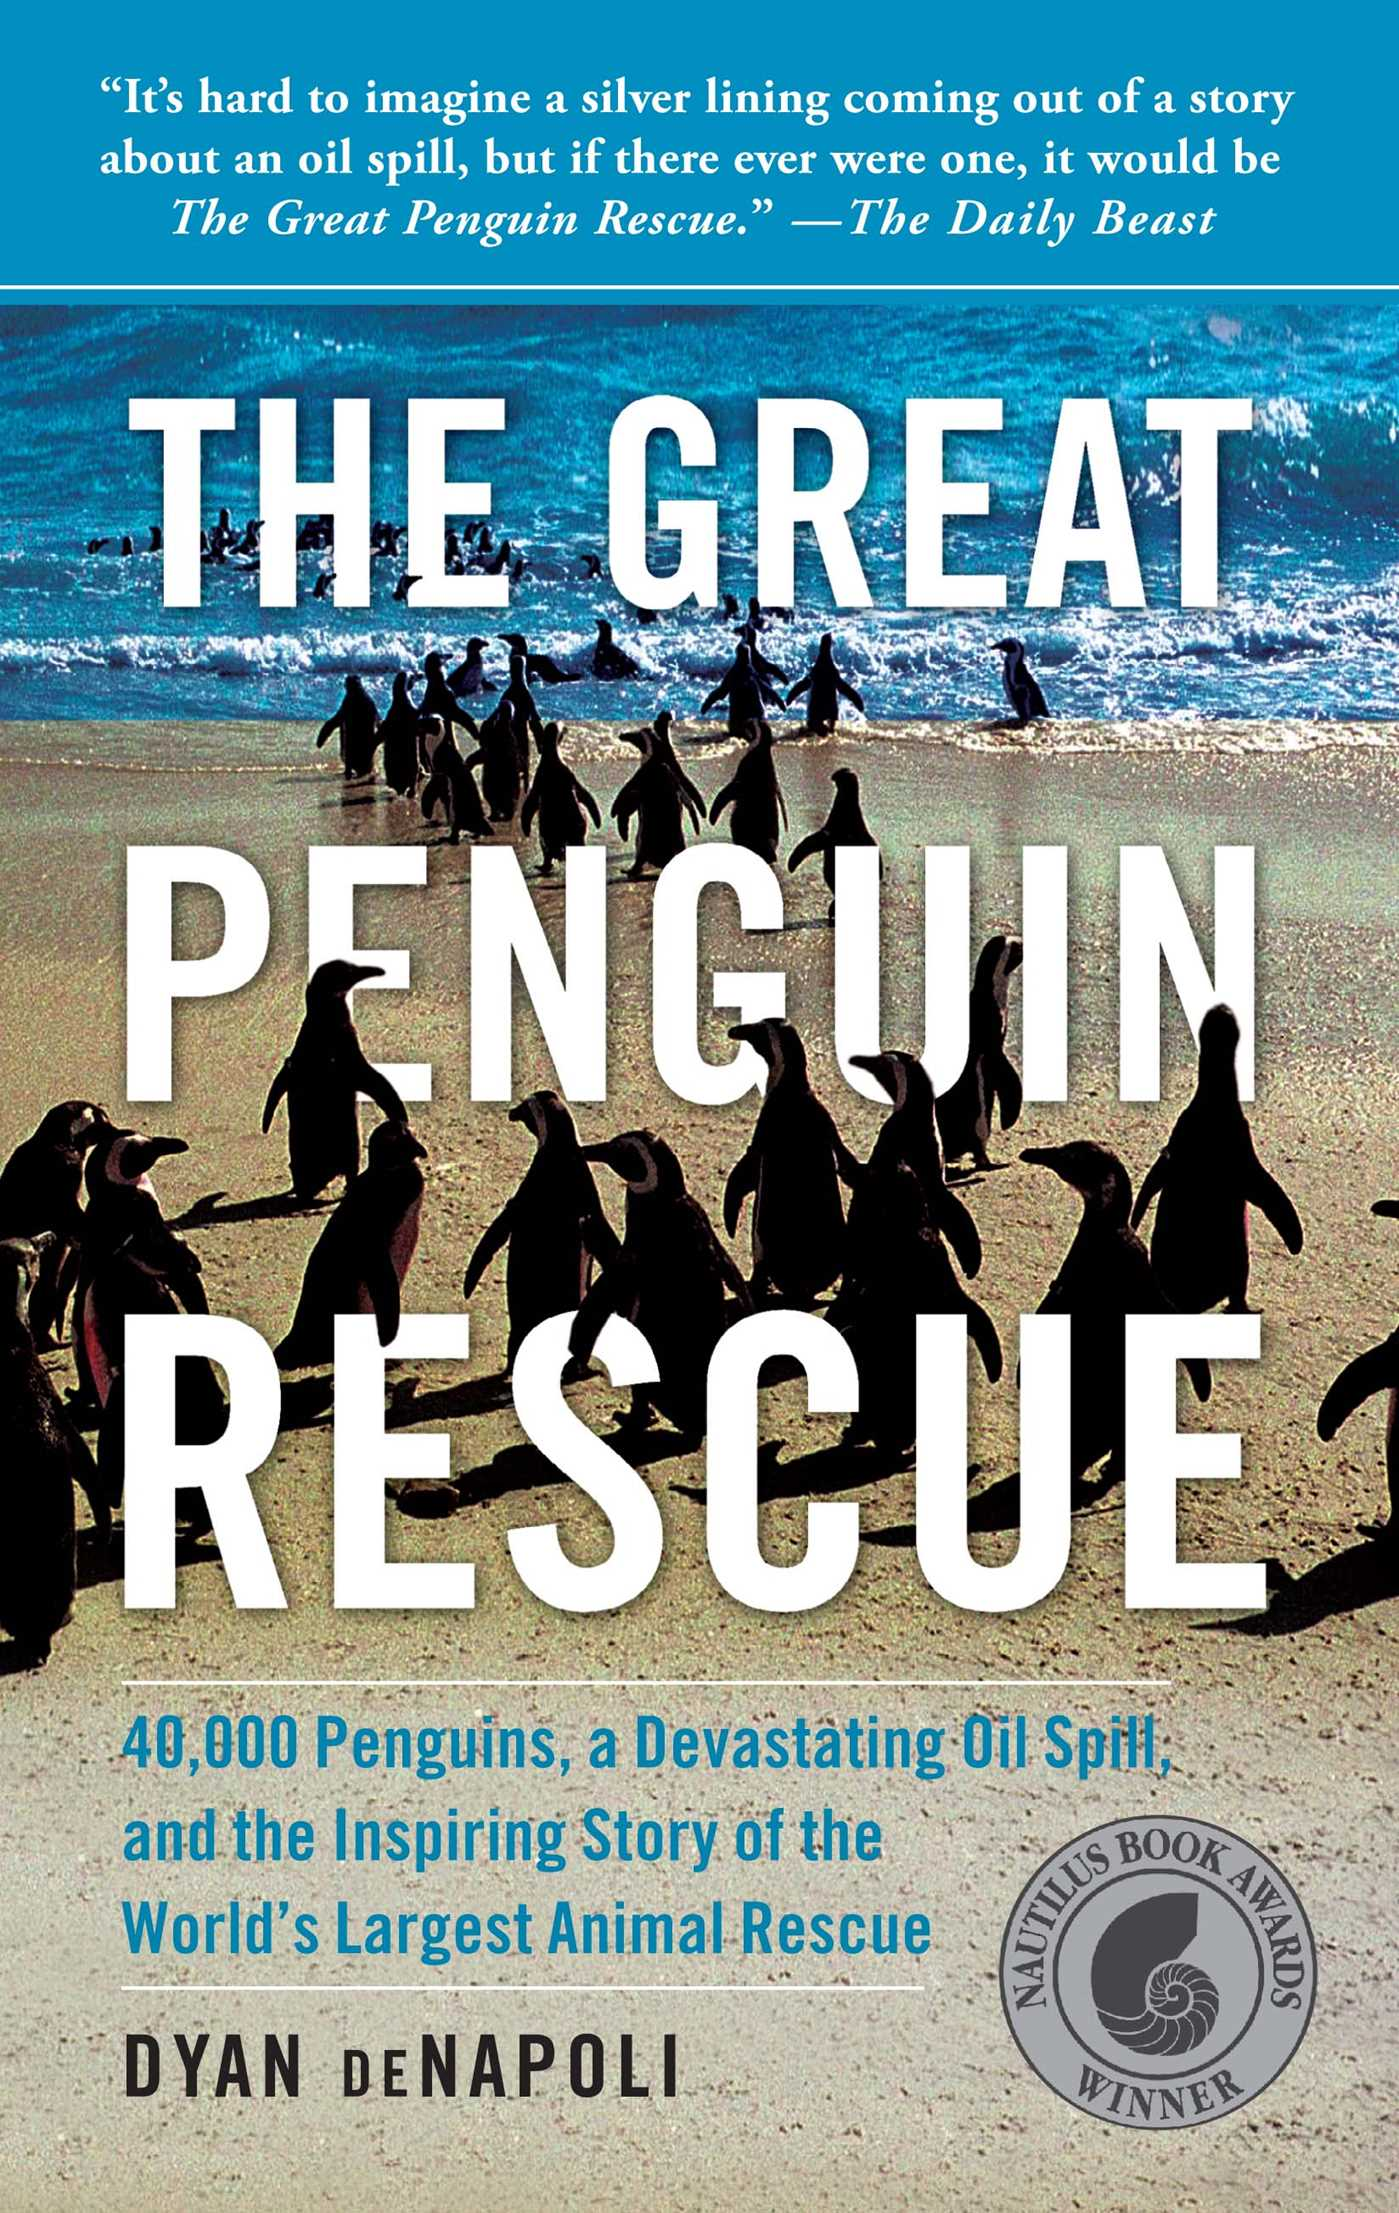 Great-penguin-rescue-9781439148181_hr